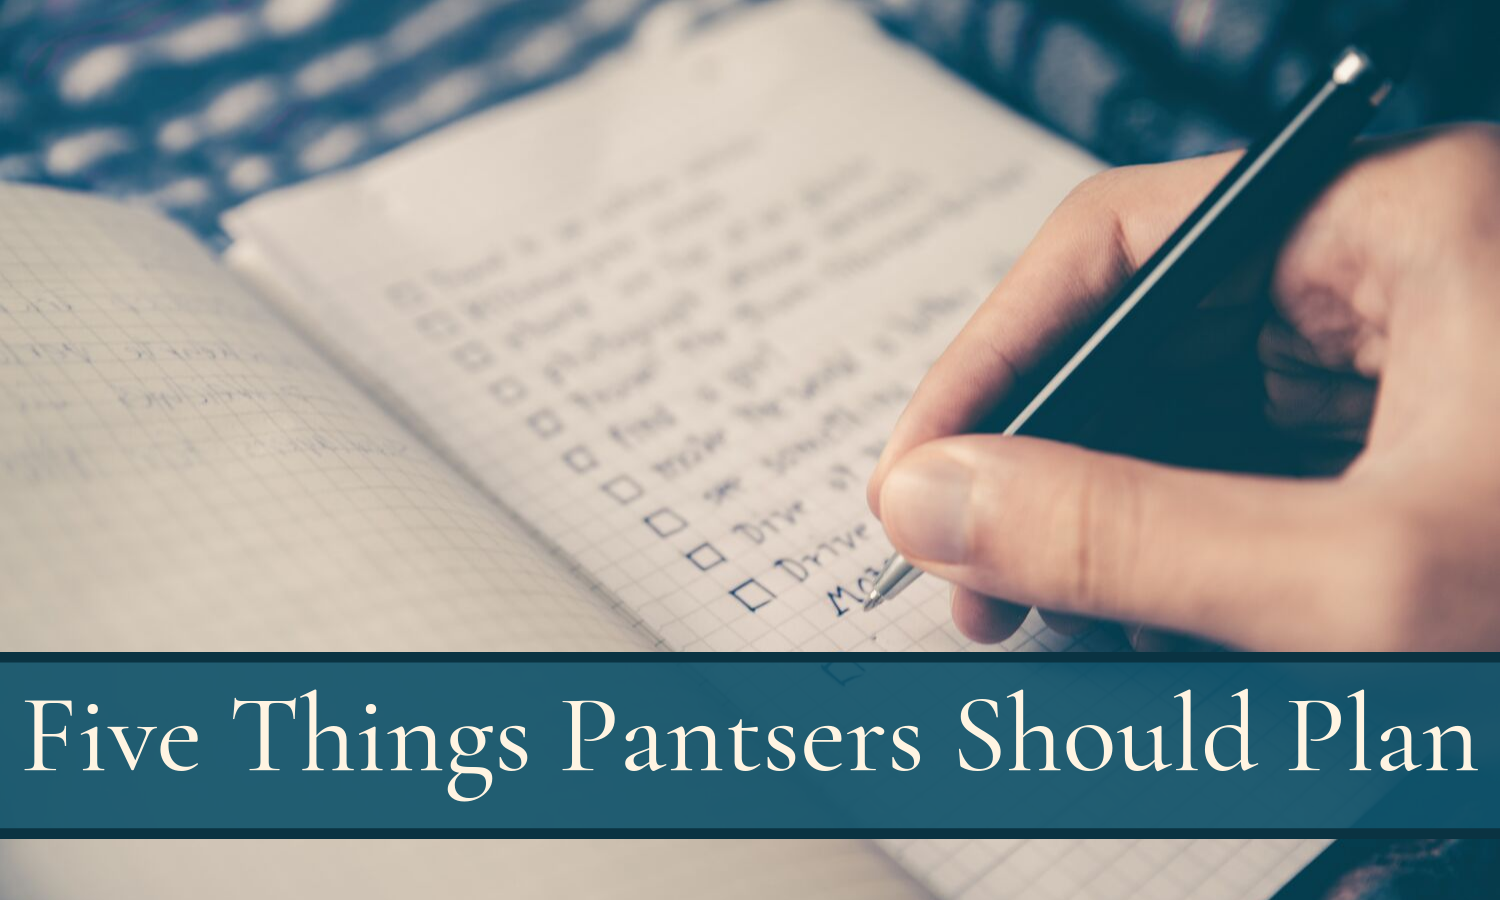 Five Things Every Pantser Should Plan